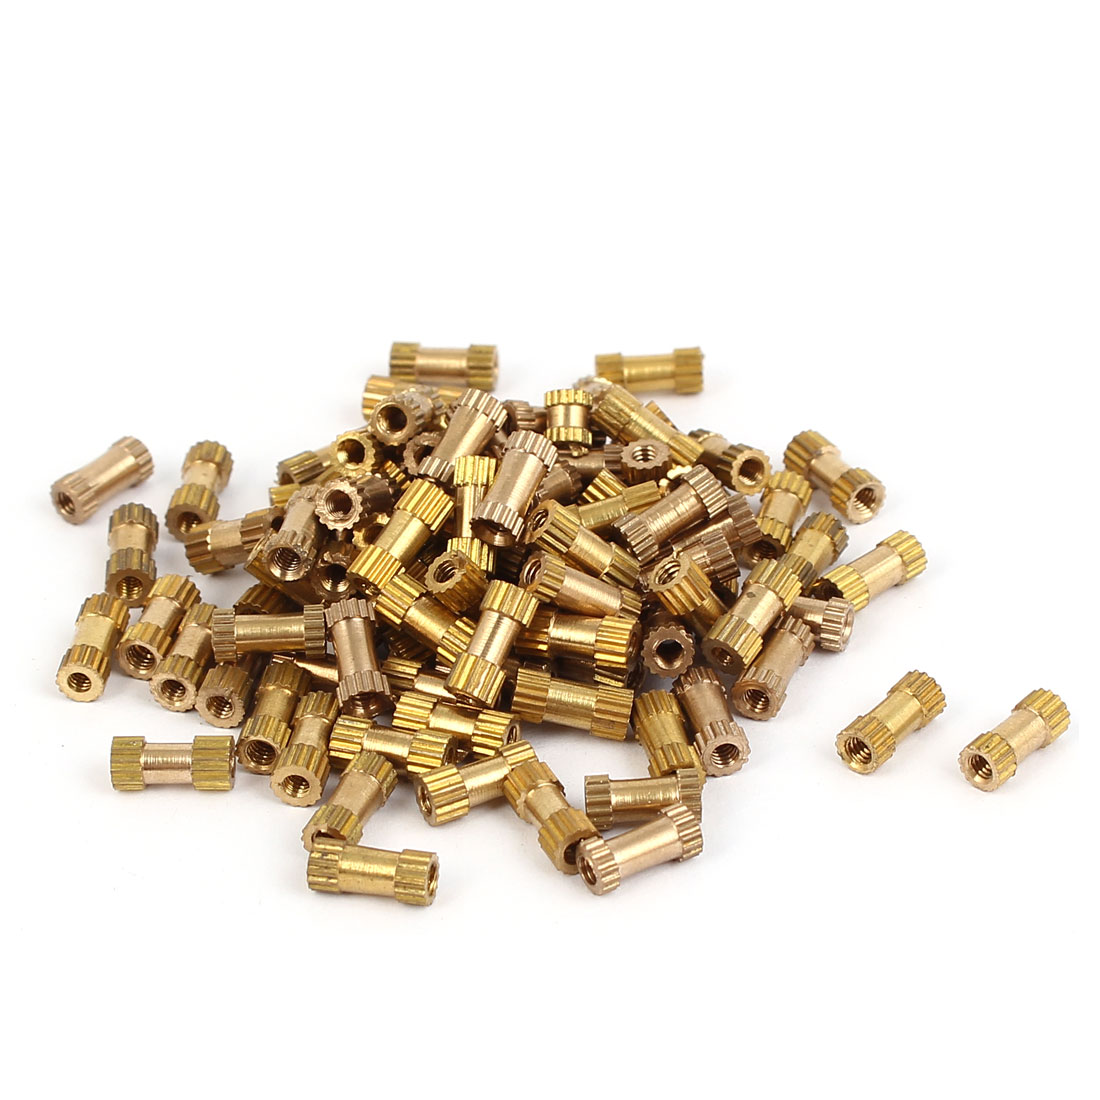 M2 x 8mm Brass Cylinder Injection Molding Knurled Threaded Insert Nuts 100PCS